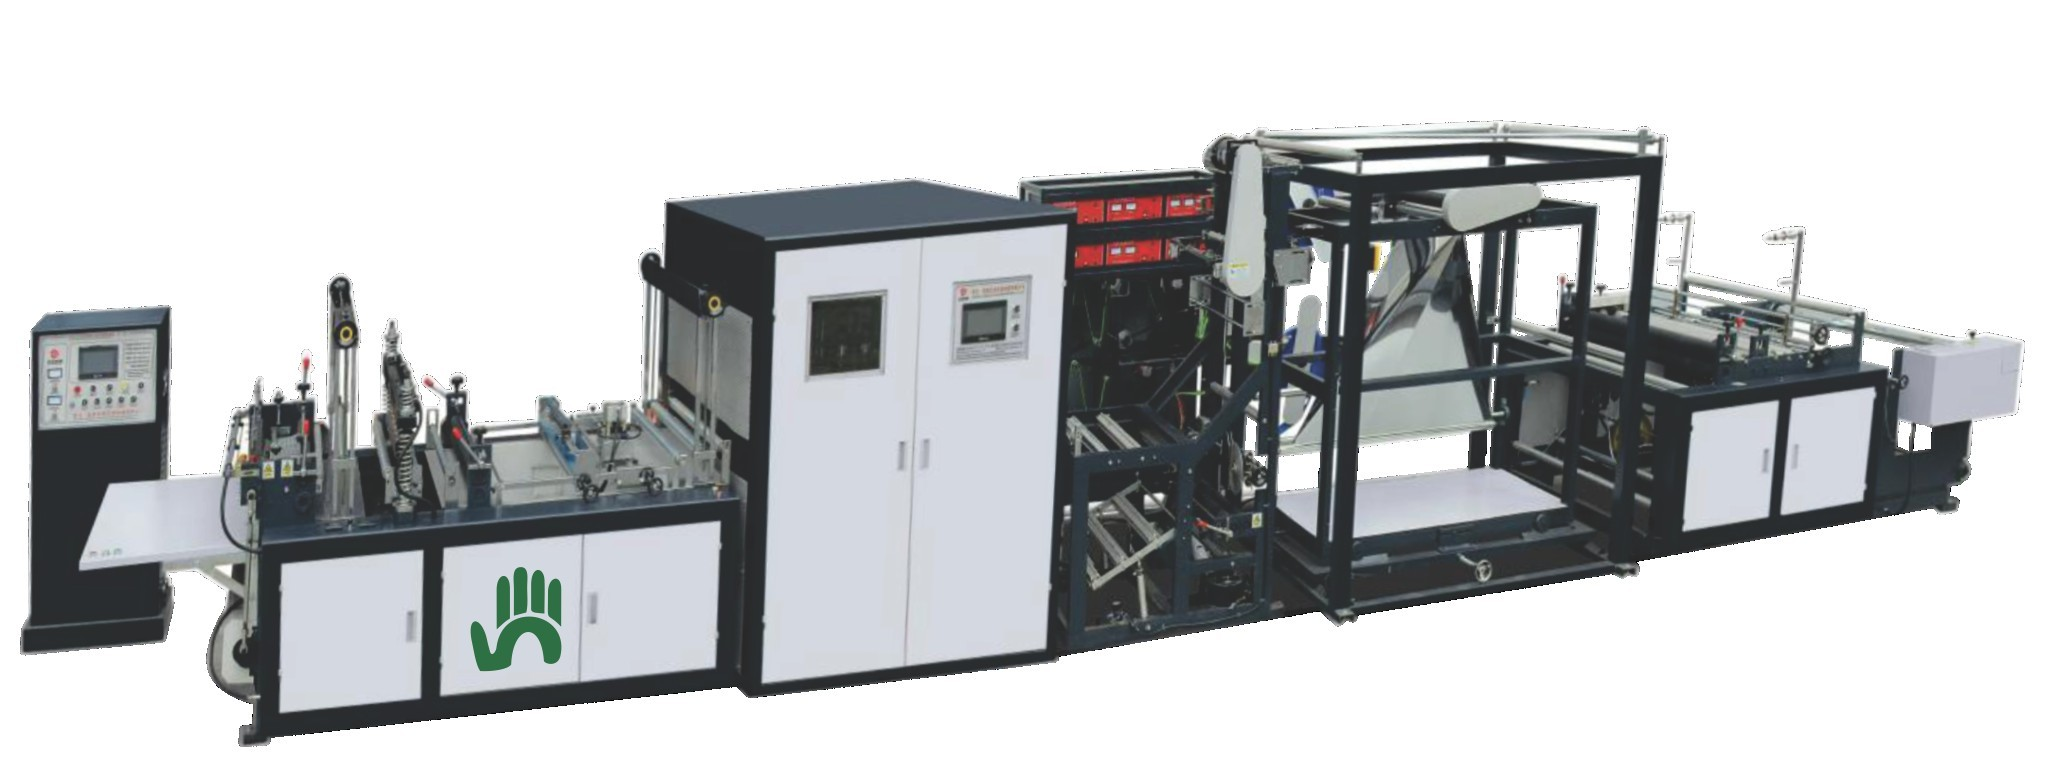 Fully Automatic Non Woven Bag Making Machnine | Offset Printing Machine Manufacturers in India